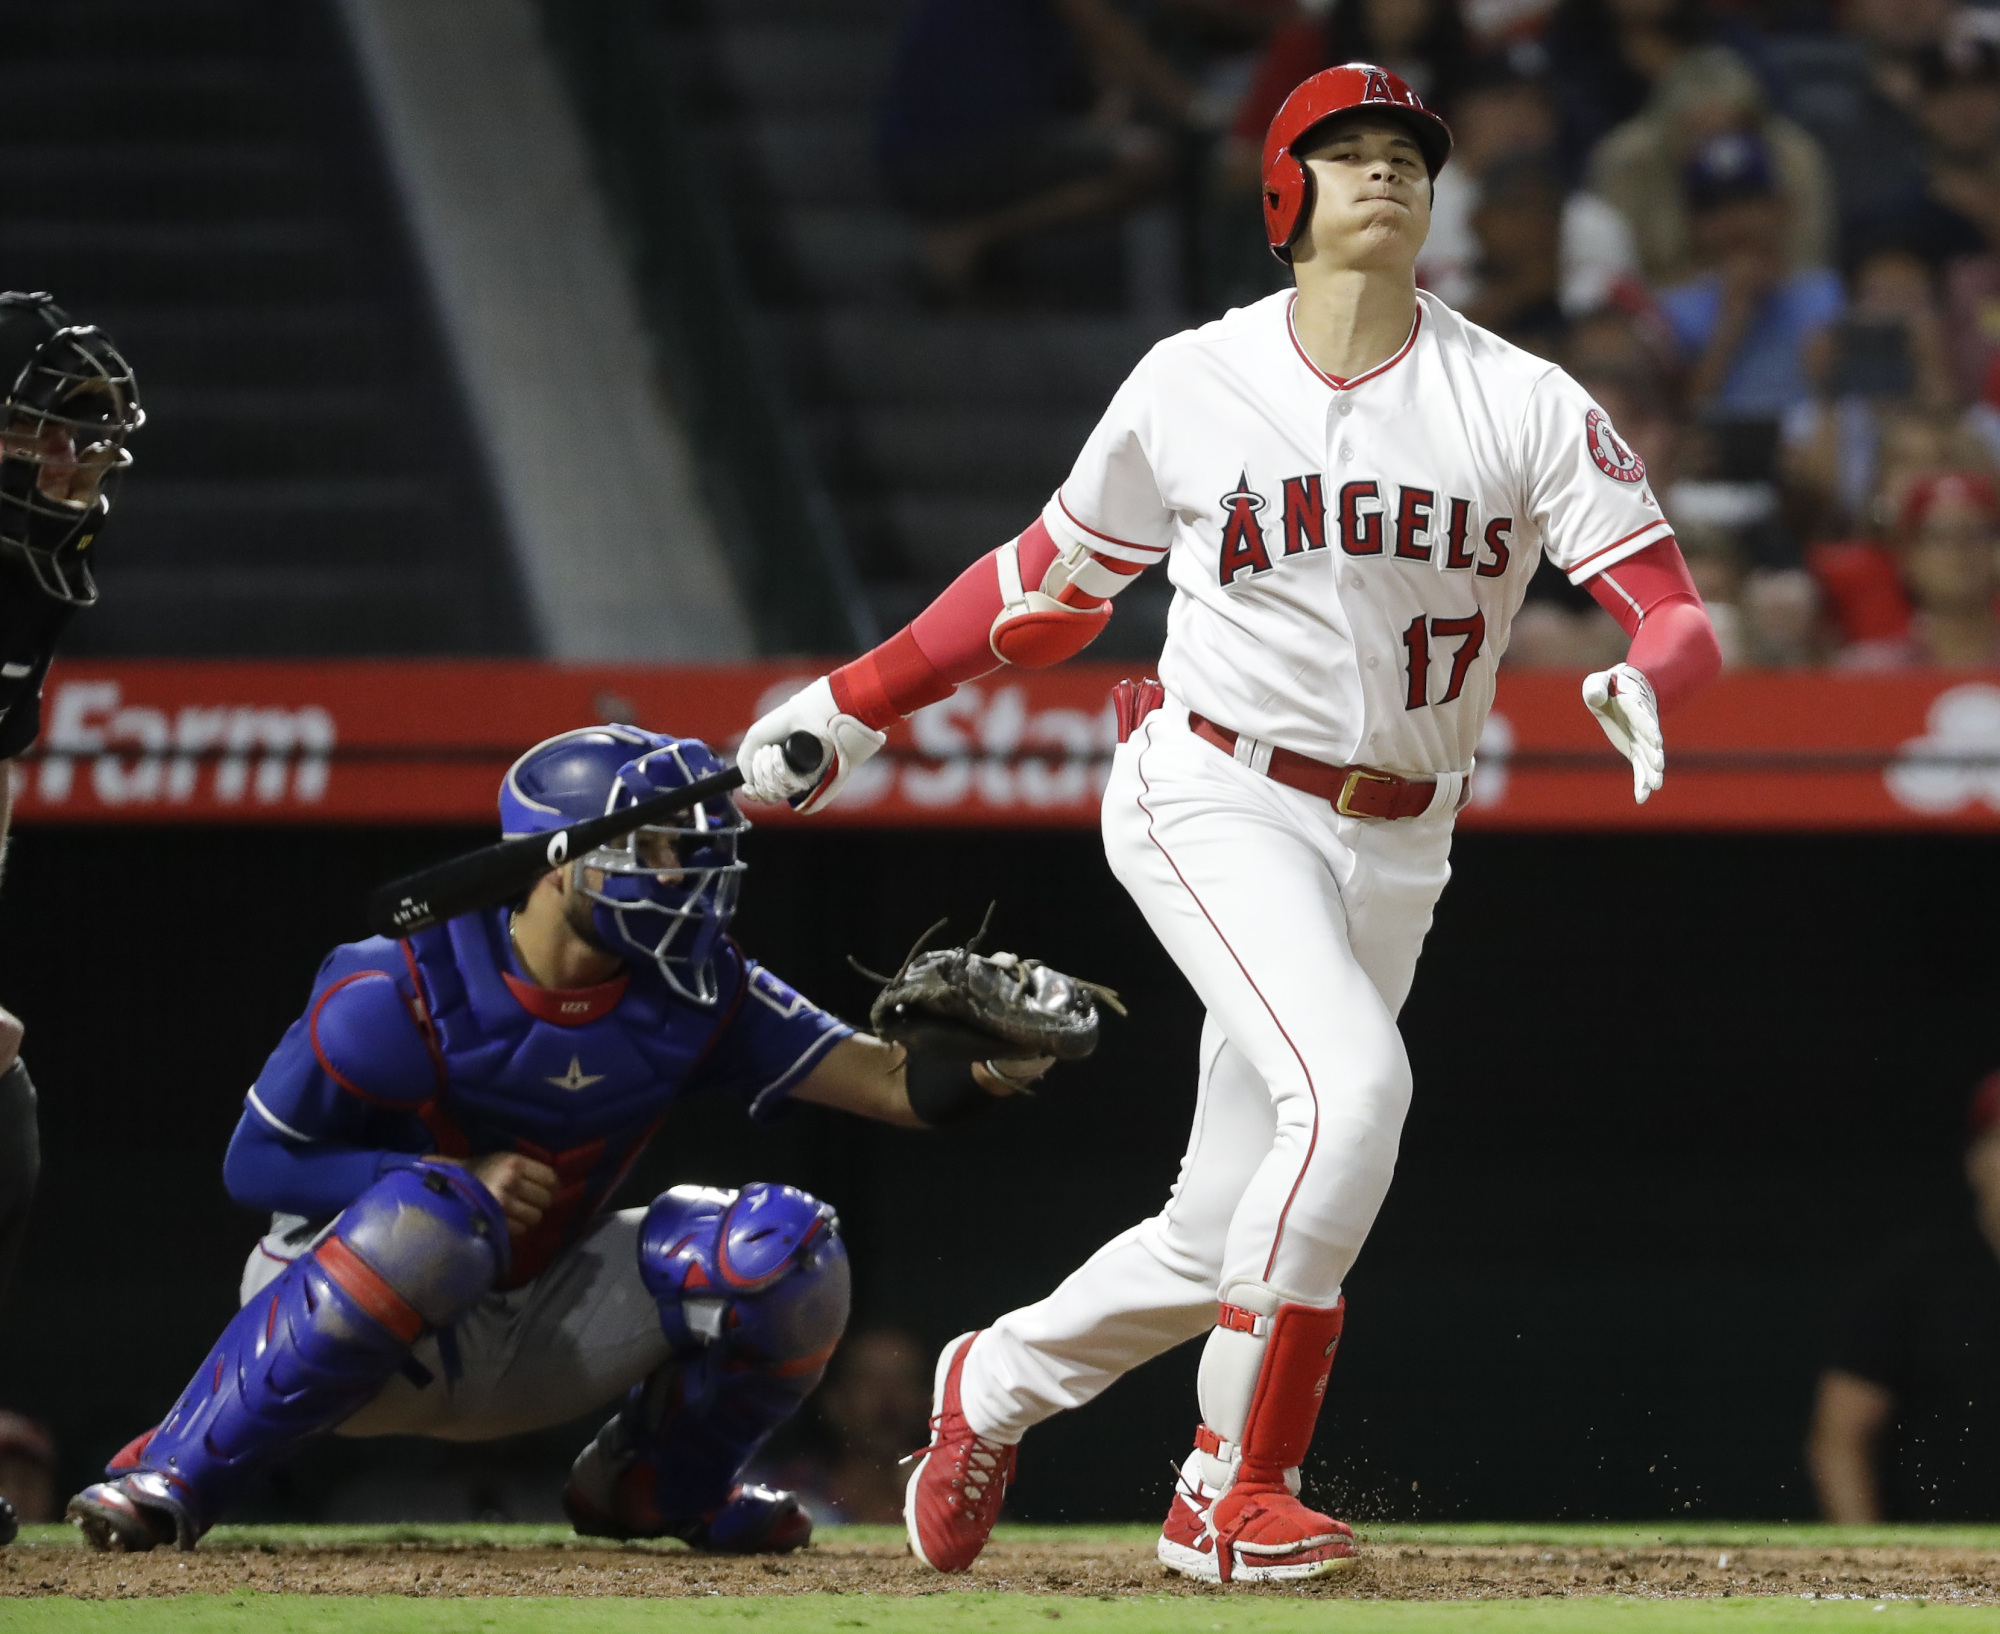 The Angels' Shohei Ohtani strikes out during the fourth inning against the Rangers on Tuesday. | AP